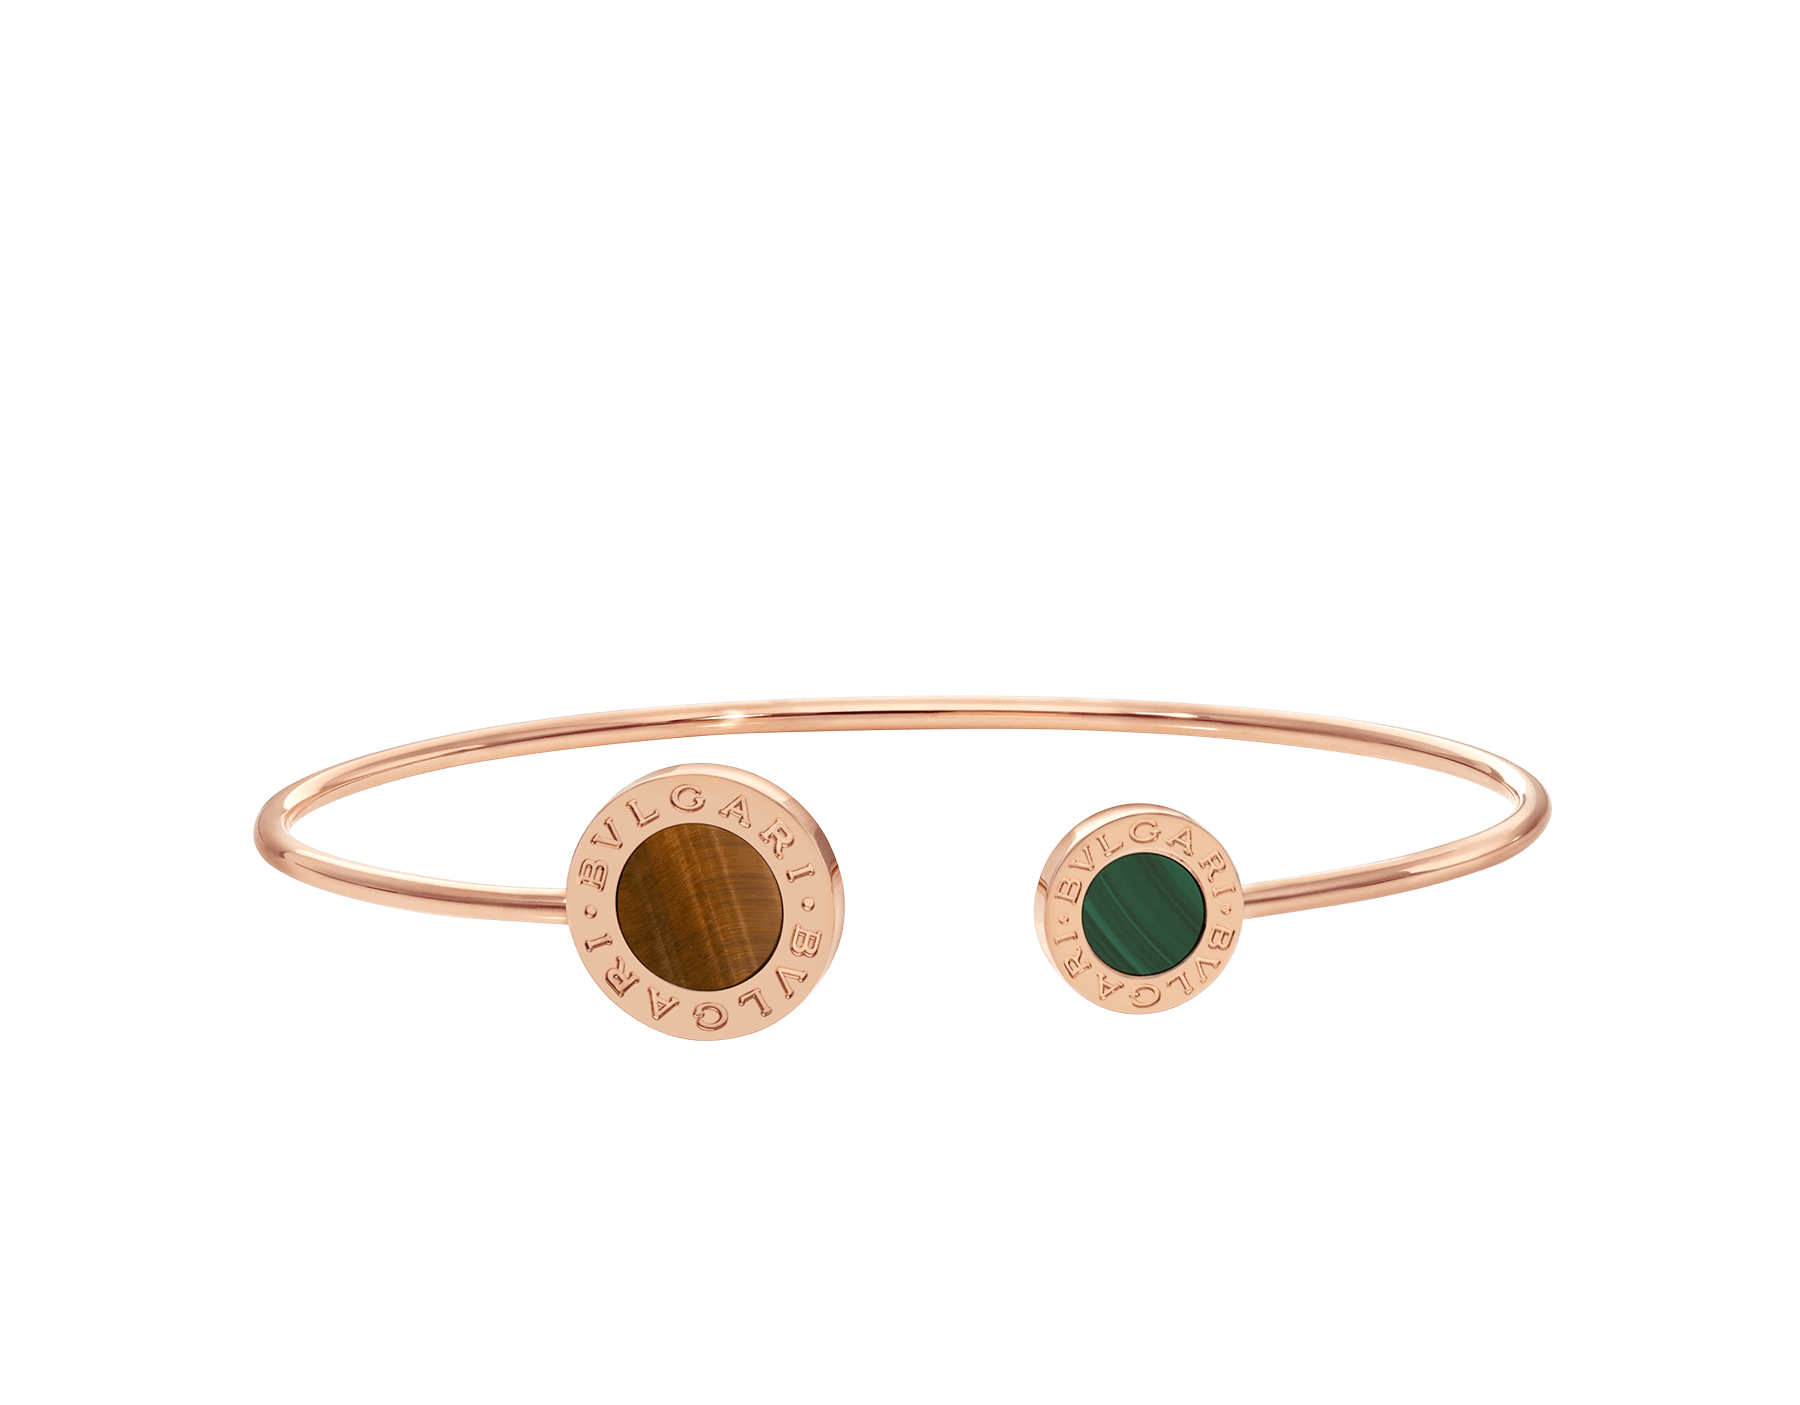 BVLGARI BVLGARI 18 kt rose gold bracelet set with tiger's eye an malachite elements BR858695 image 2